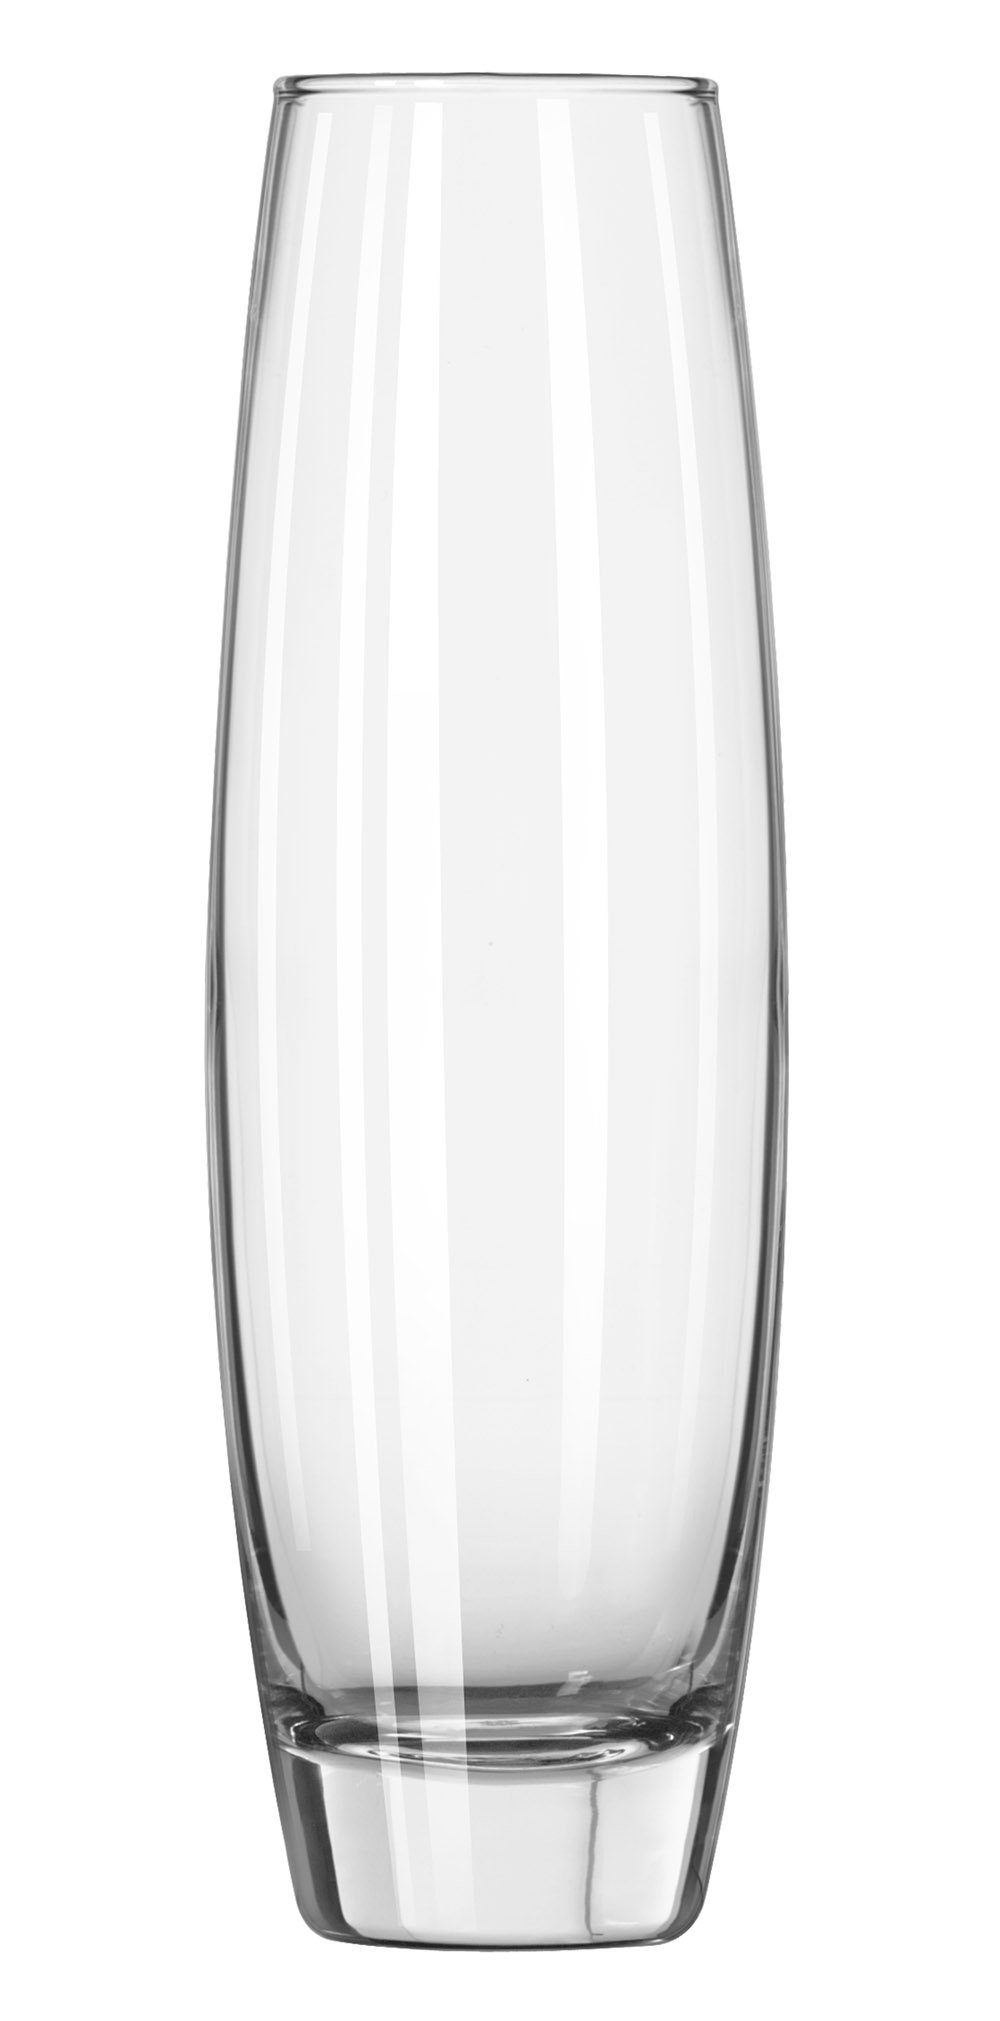 Libbey 7 1/2 Inch Elite Bud Vase in Clear, Set of 12 - Twelve bud vases in clear; Height = 7 1/2 inches, Diameter = 2.36 inches Made of glass Great for parties or as a wedding, housewarming, or host gift - vases, kitchen-dining-room-decor, kitchen-dining-room - 614js8%2BNrML -